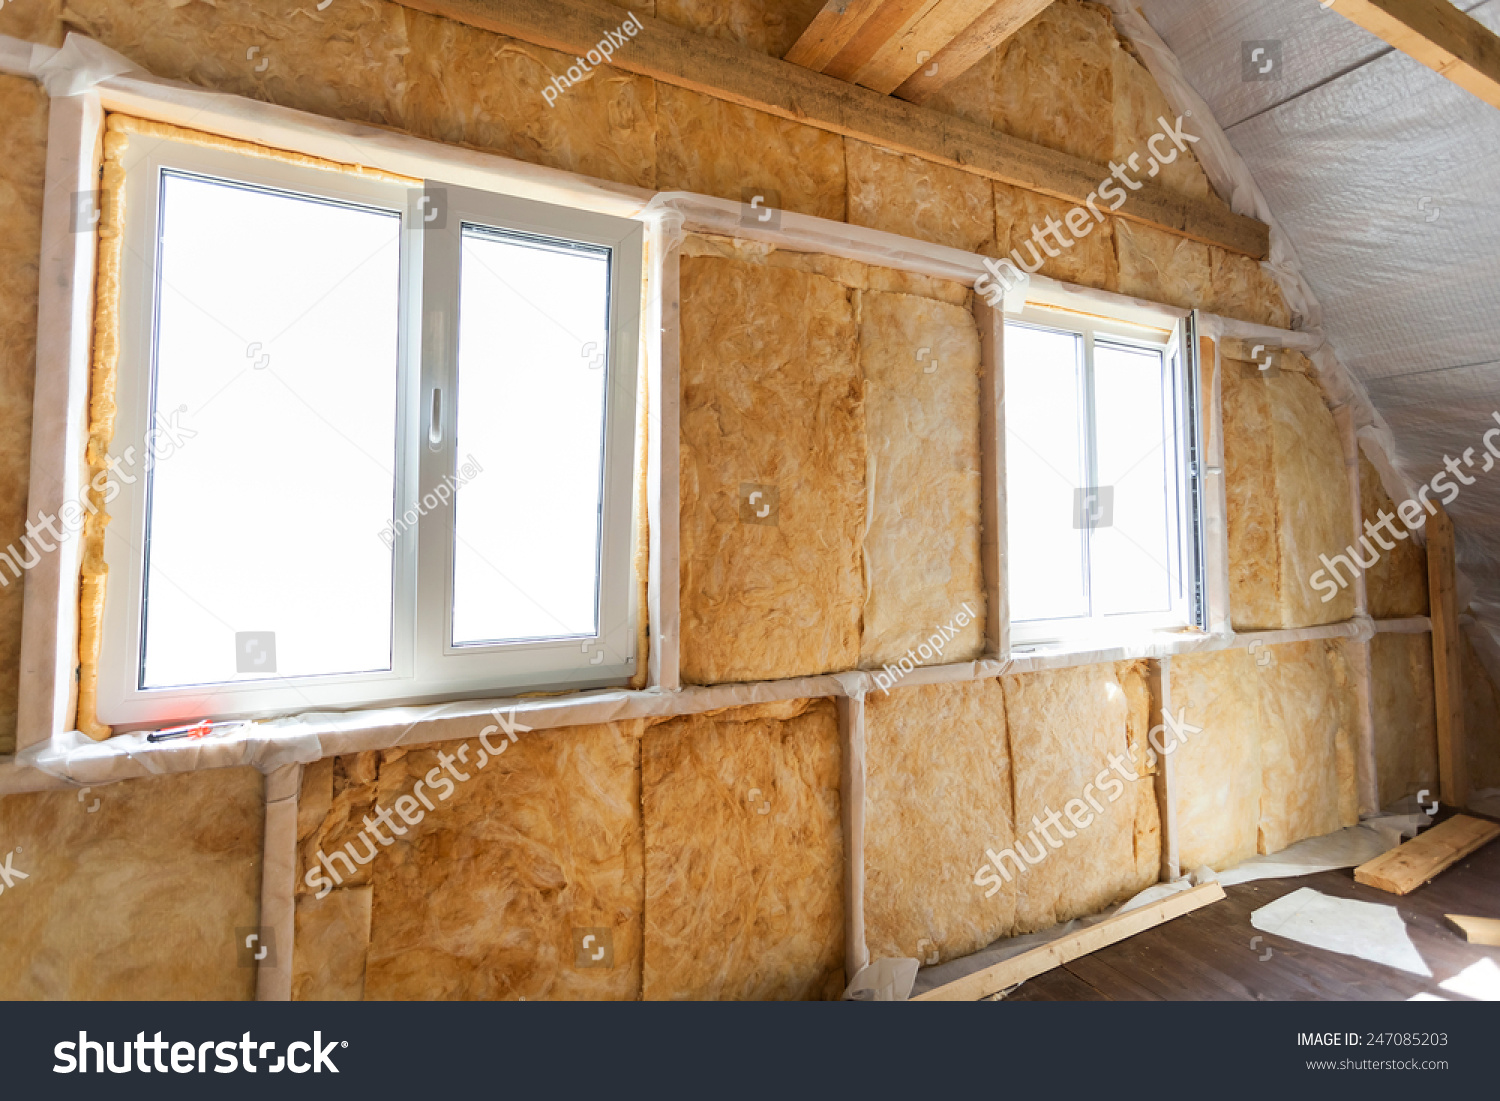 Inside wall heat isolation mineral wool stock photo for Isolation construction